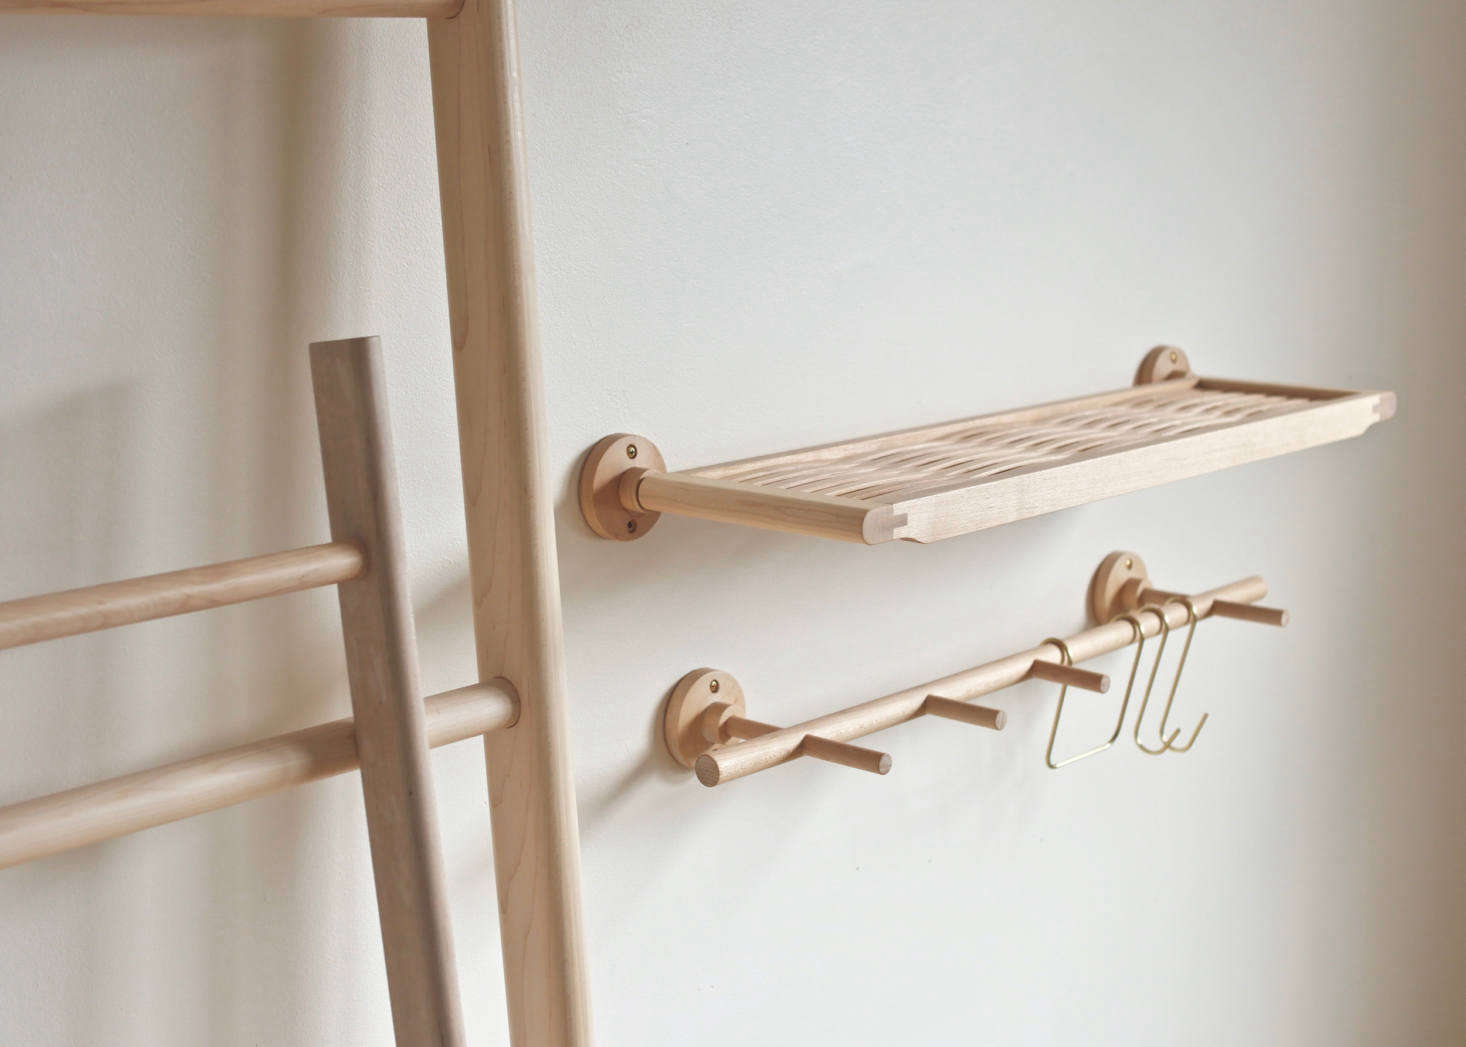 A Woven Shelf in maple with brass hardware.